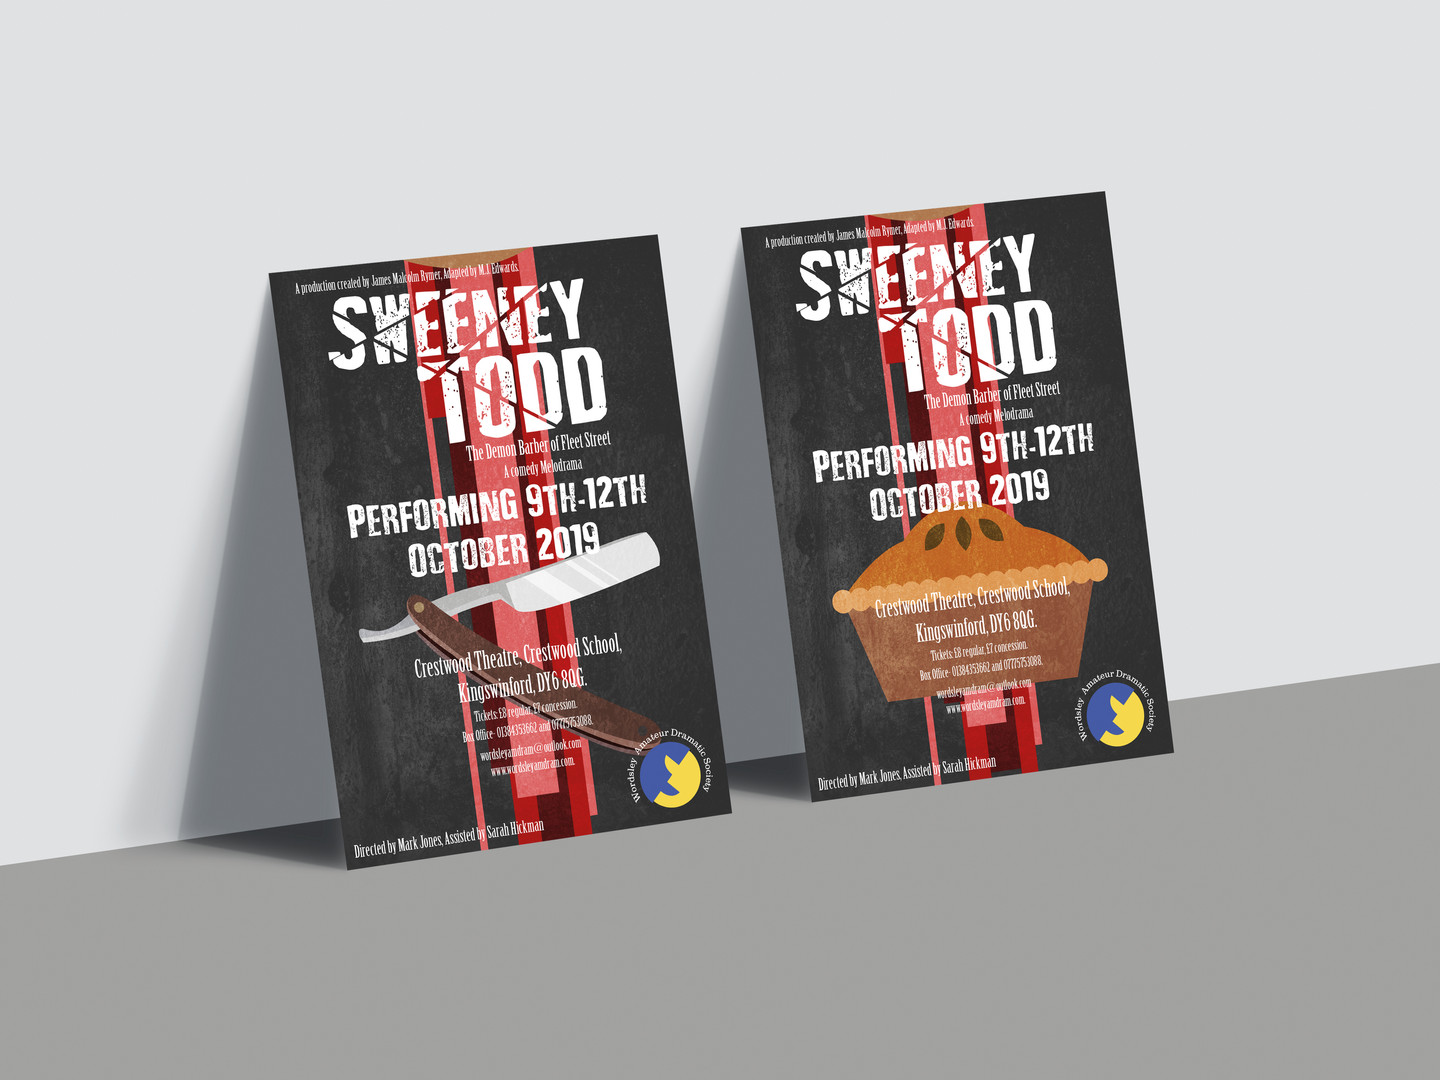 Sweeney Todd Posters 1 & 2